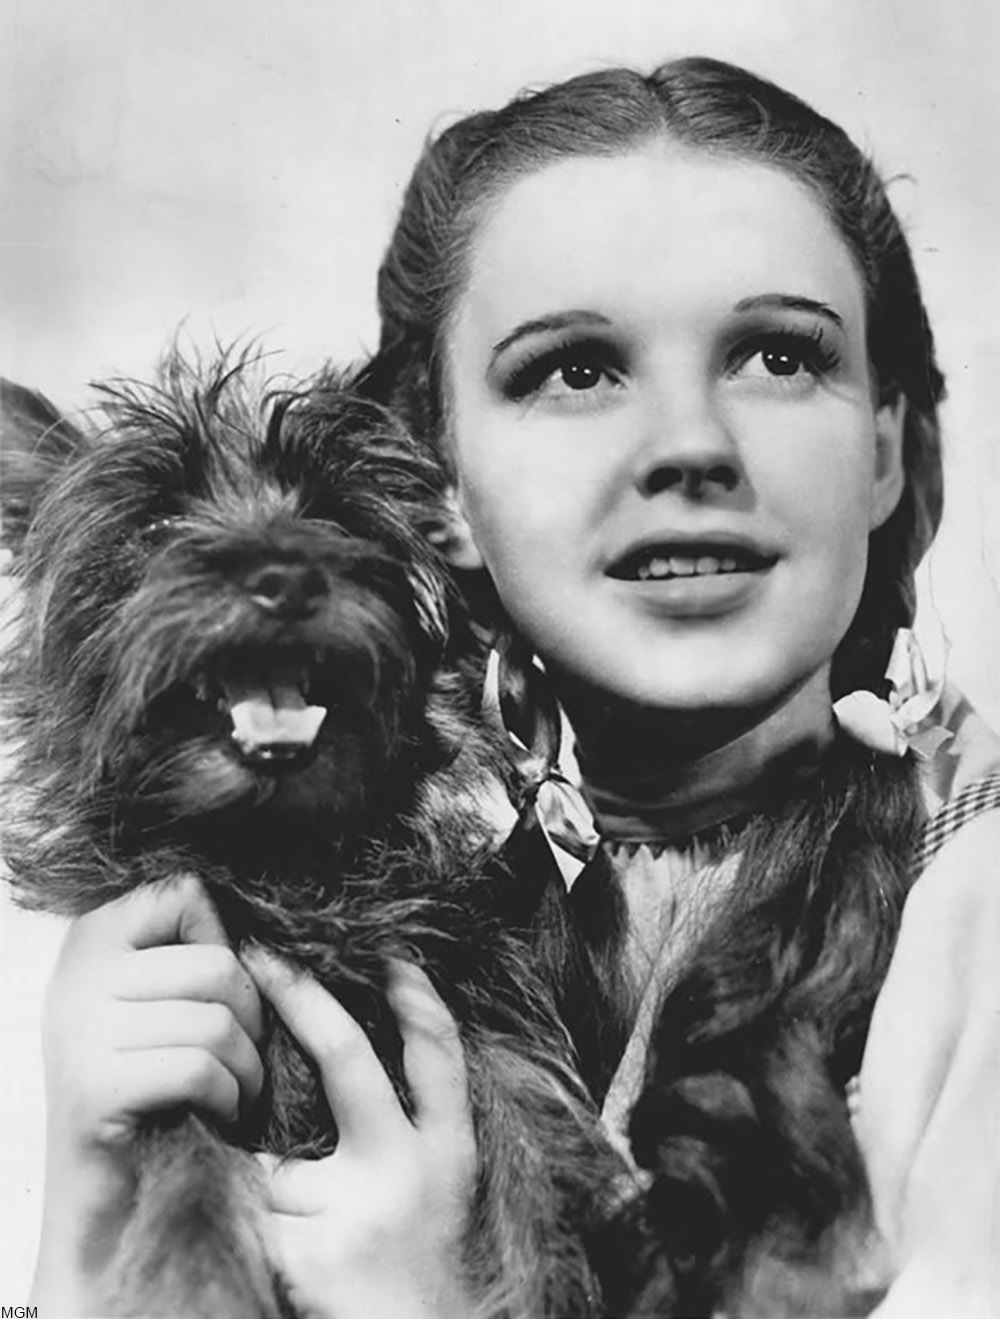 Judy Garland in a publicity photo for The Wizard of Oz